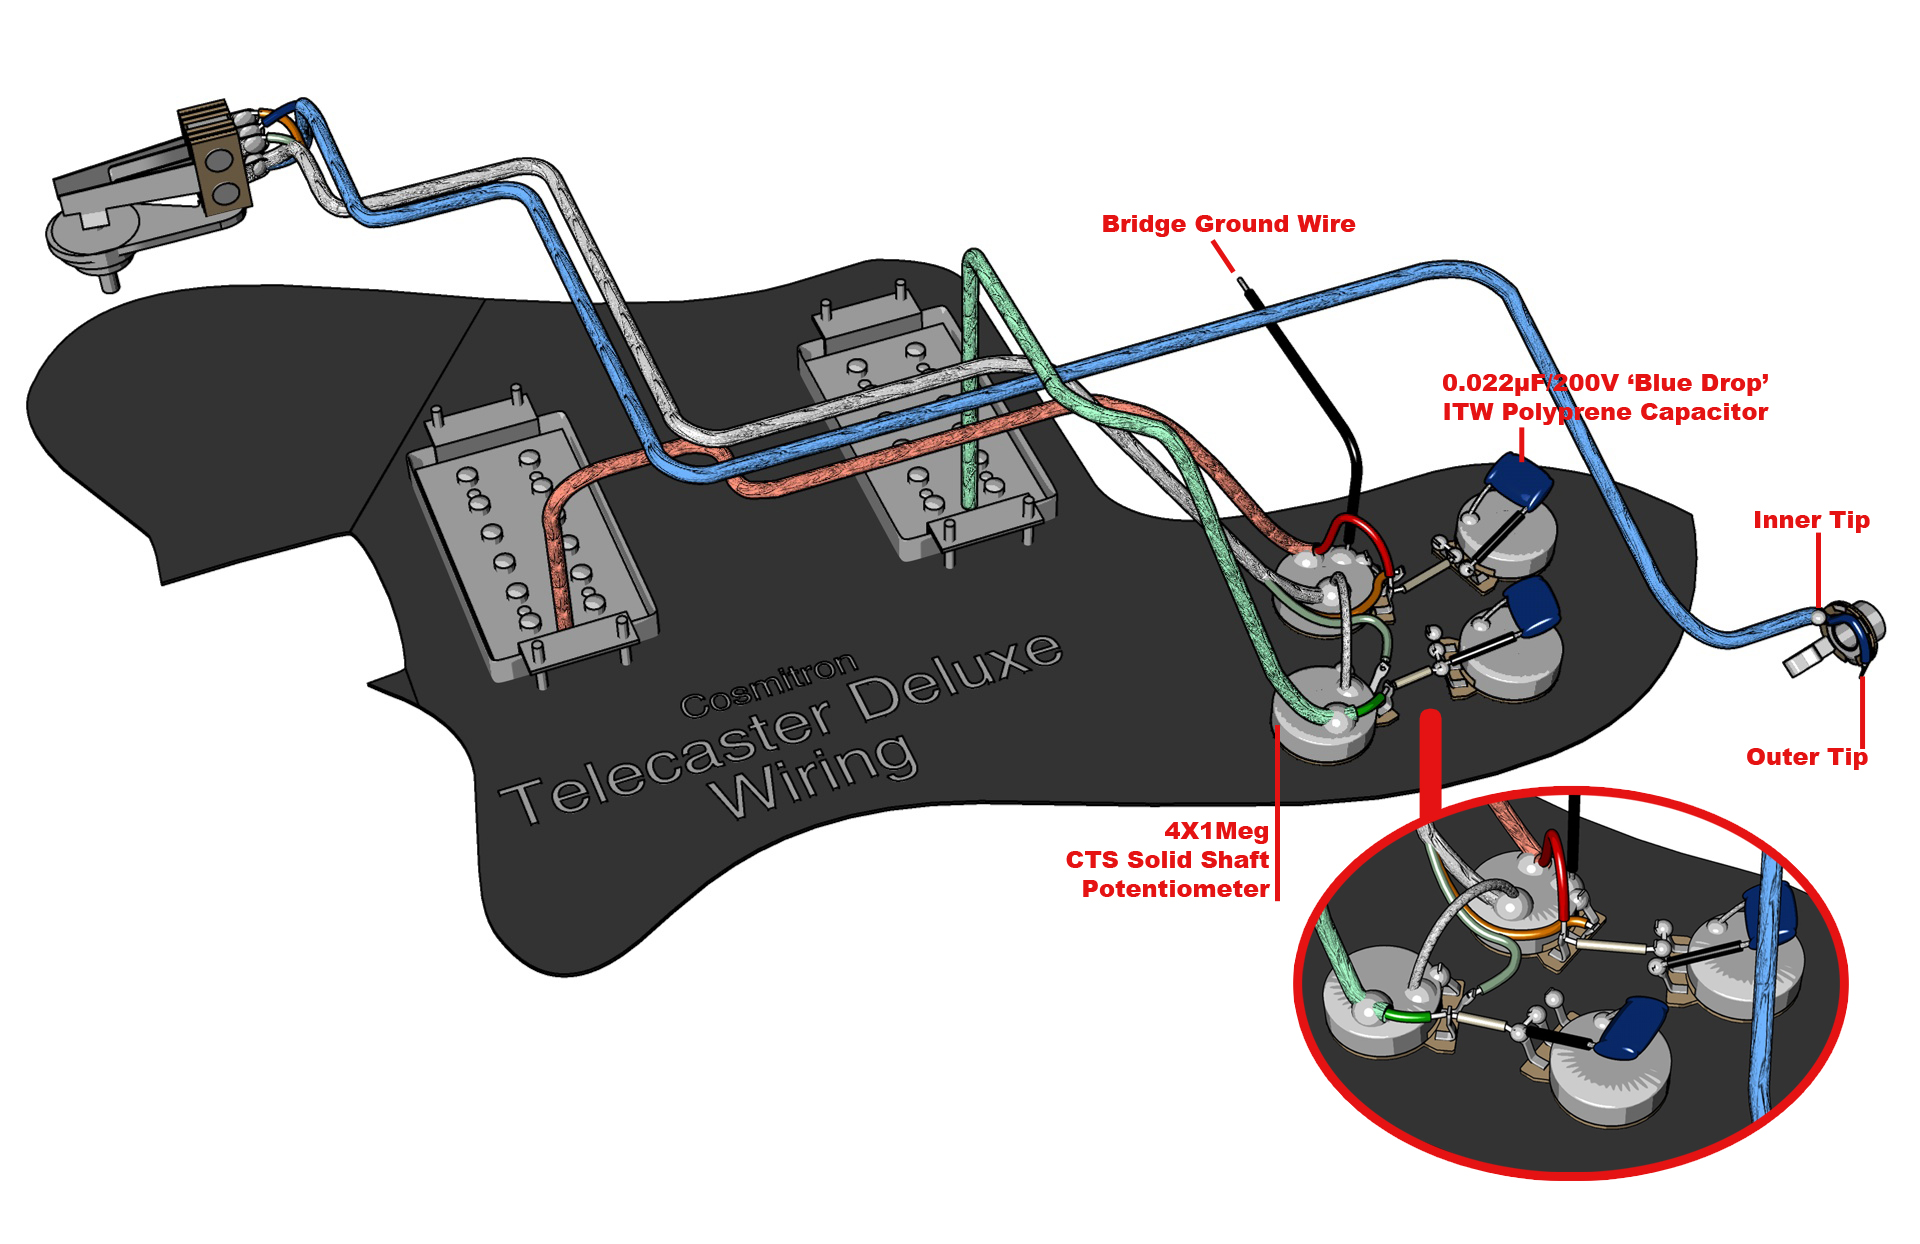 TLDX wiring c ilovefuzz com \u2022 view topic 72ri tele deluxe re wire upgrade project Guitar Wiring Schematics at creativeand.co